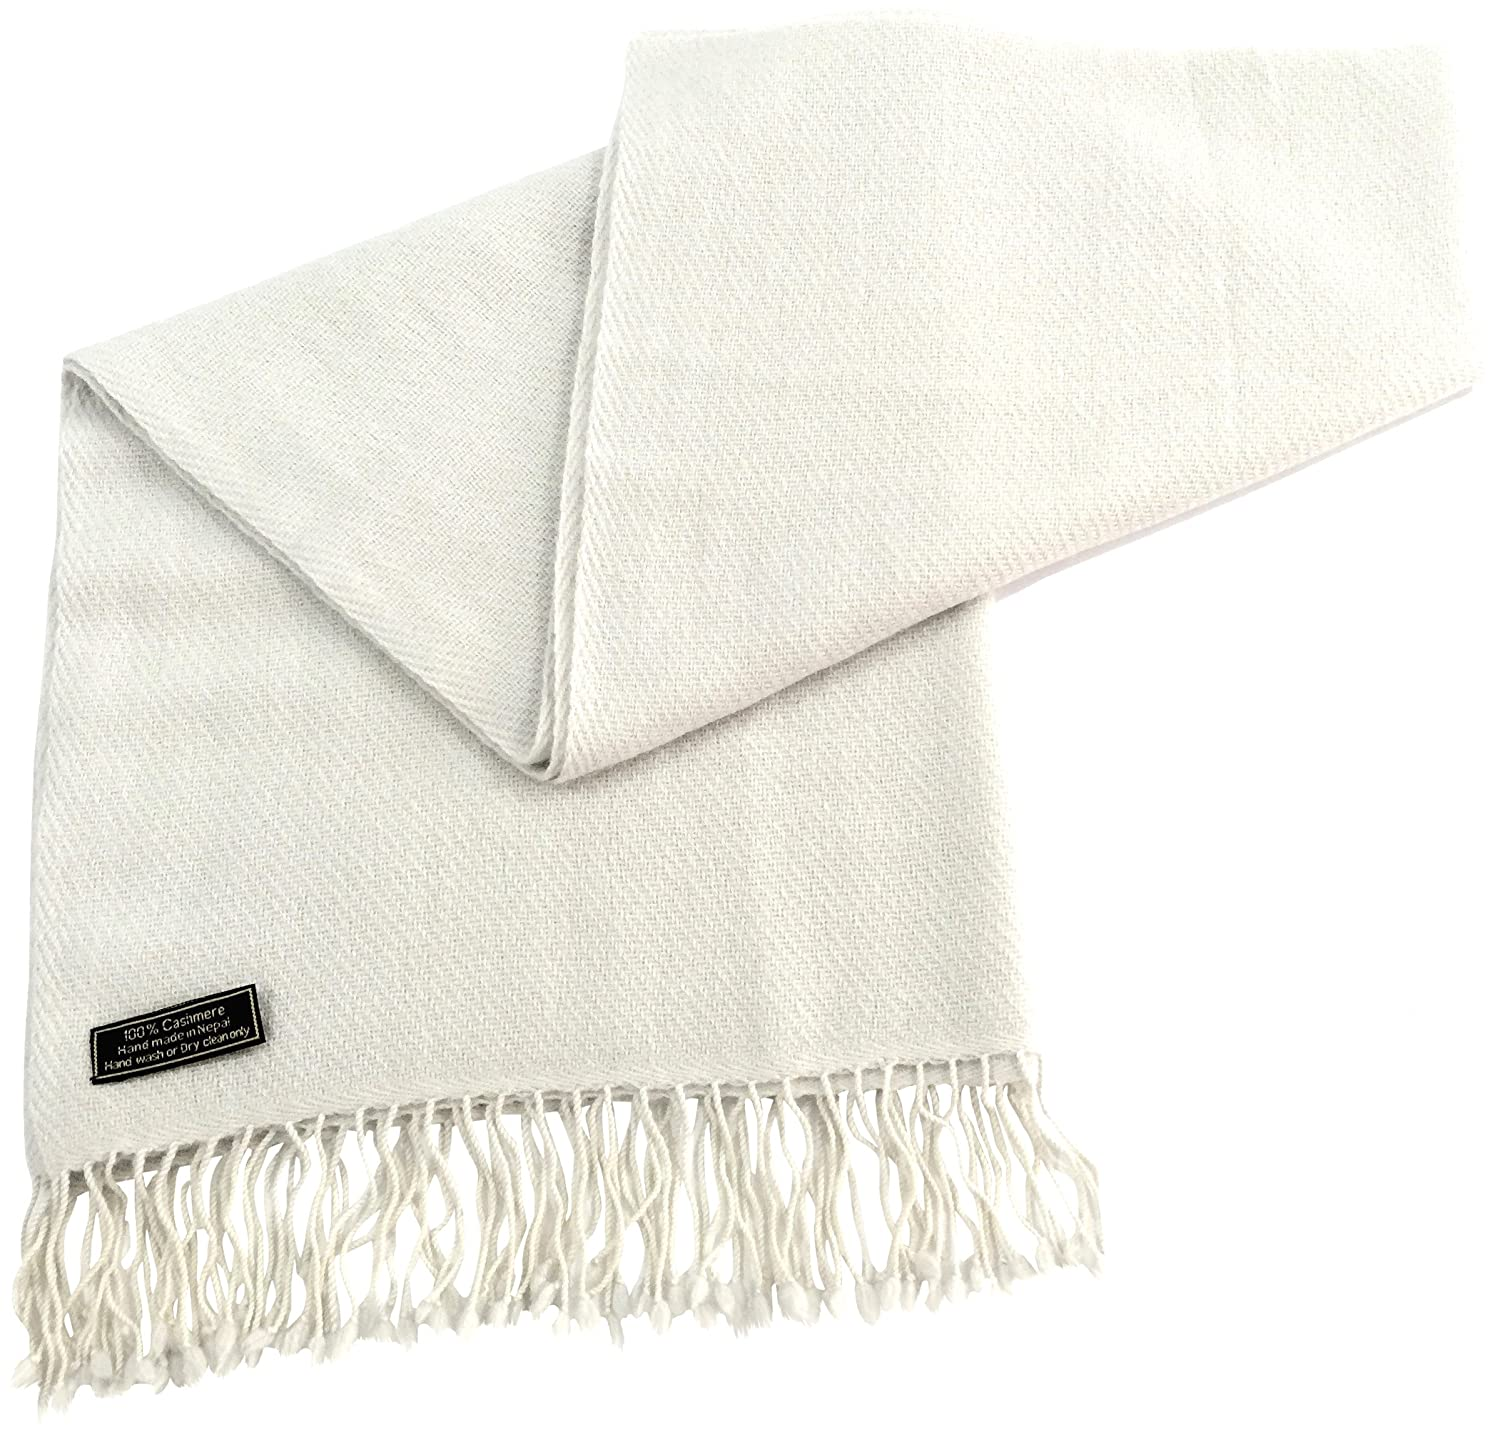 Ivory Beige High Grade 100% Cashmere Shawl Scarf Wrap Hand Made in Nepal NEW